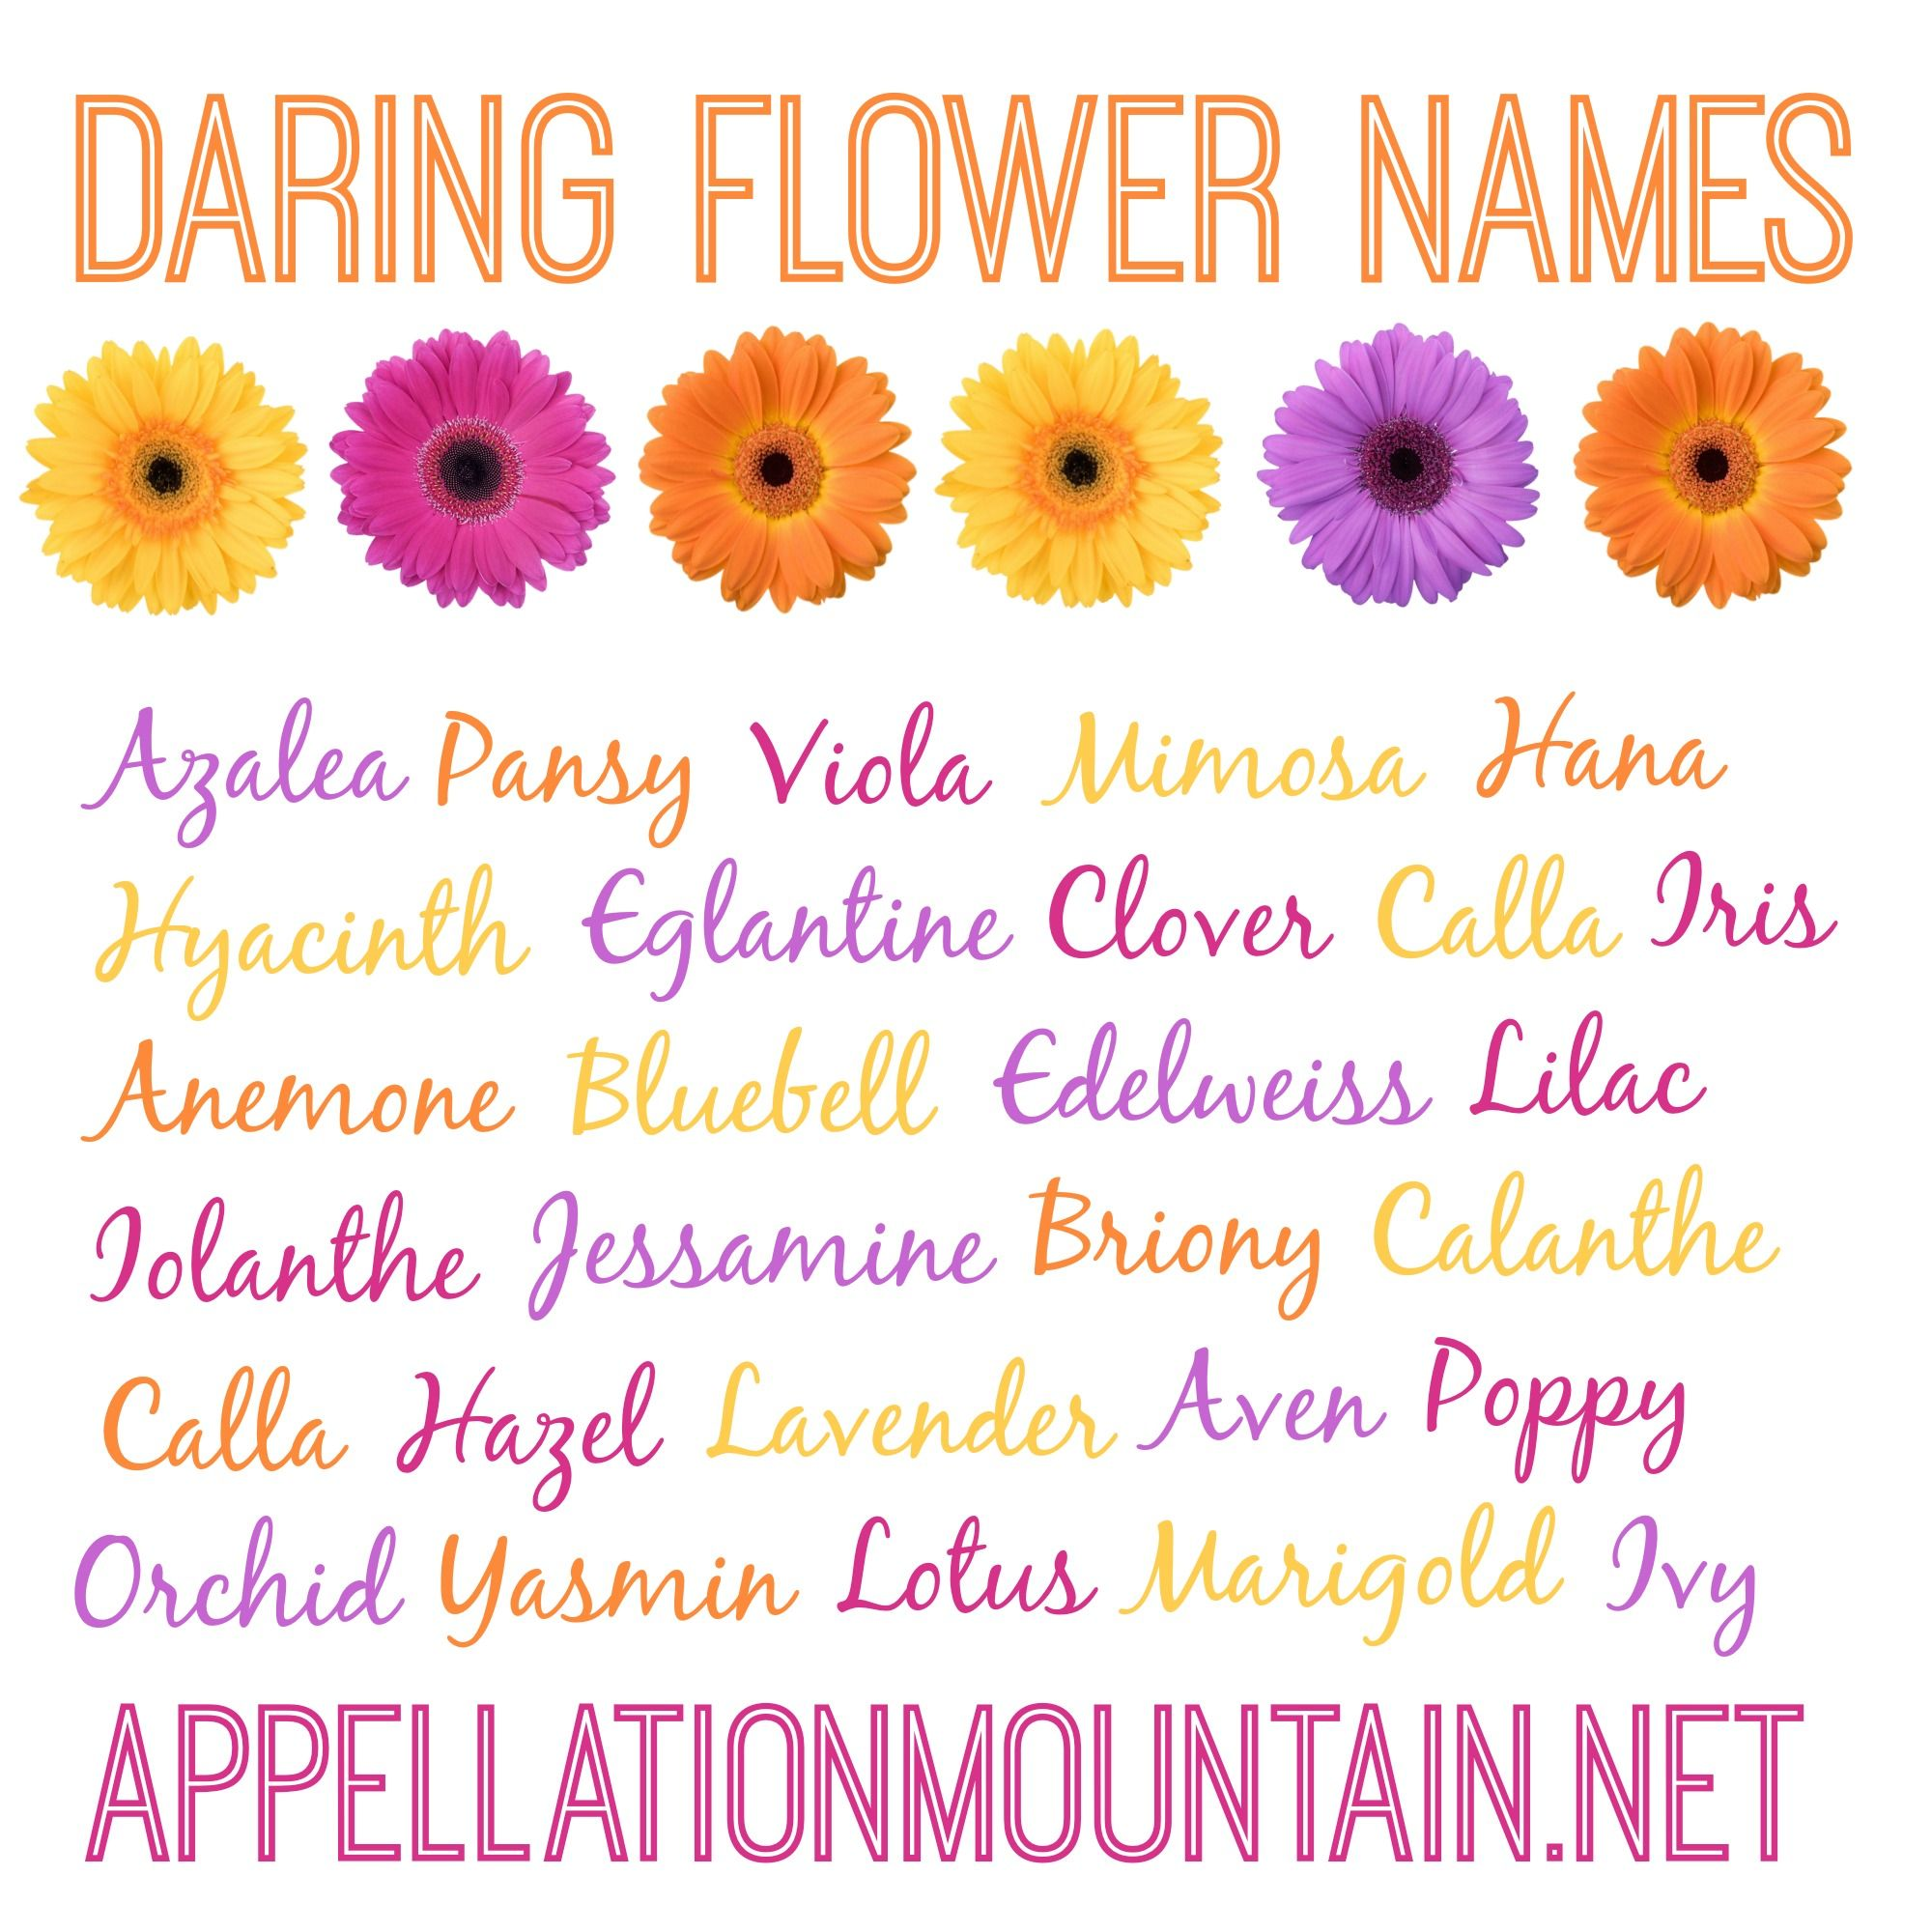 Daring Flower Names Are A Huge Category From Vintage Picks Like Dahlia To Rarely Used Possibilities Like Edelweiss Flower Names Unique Girl Names Girl Names